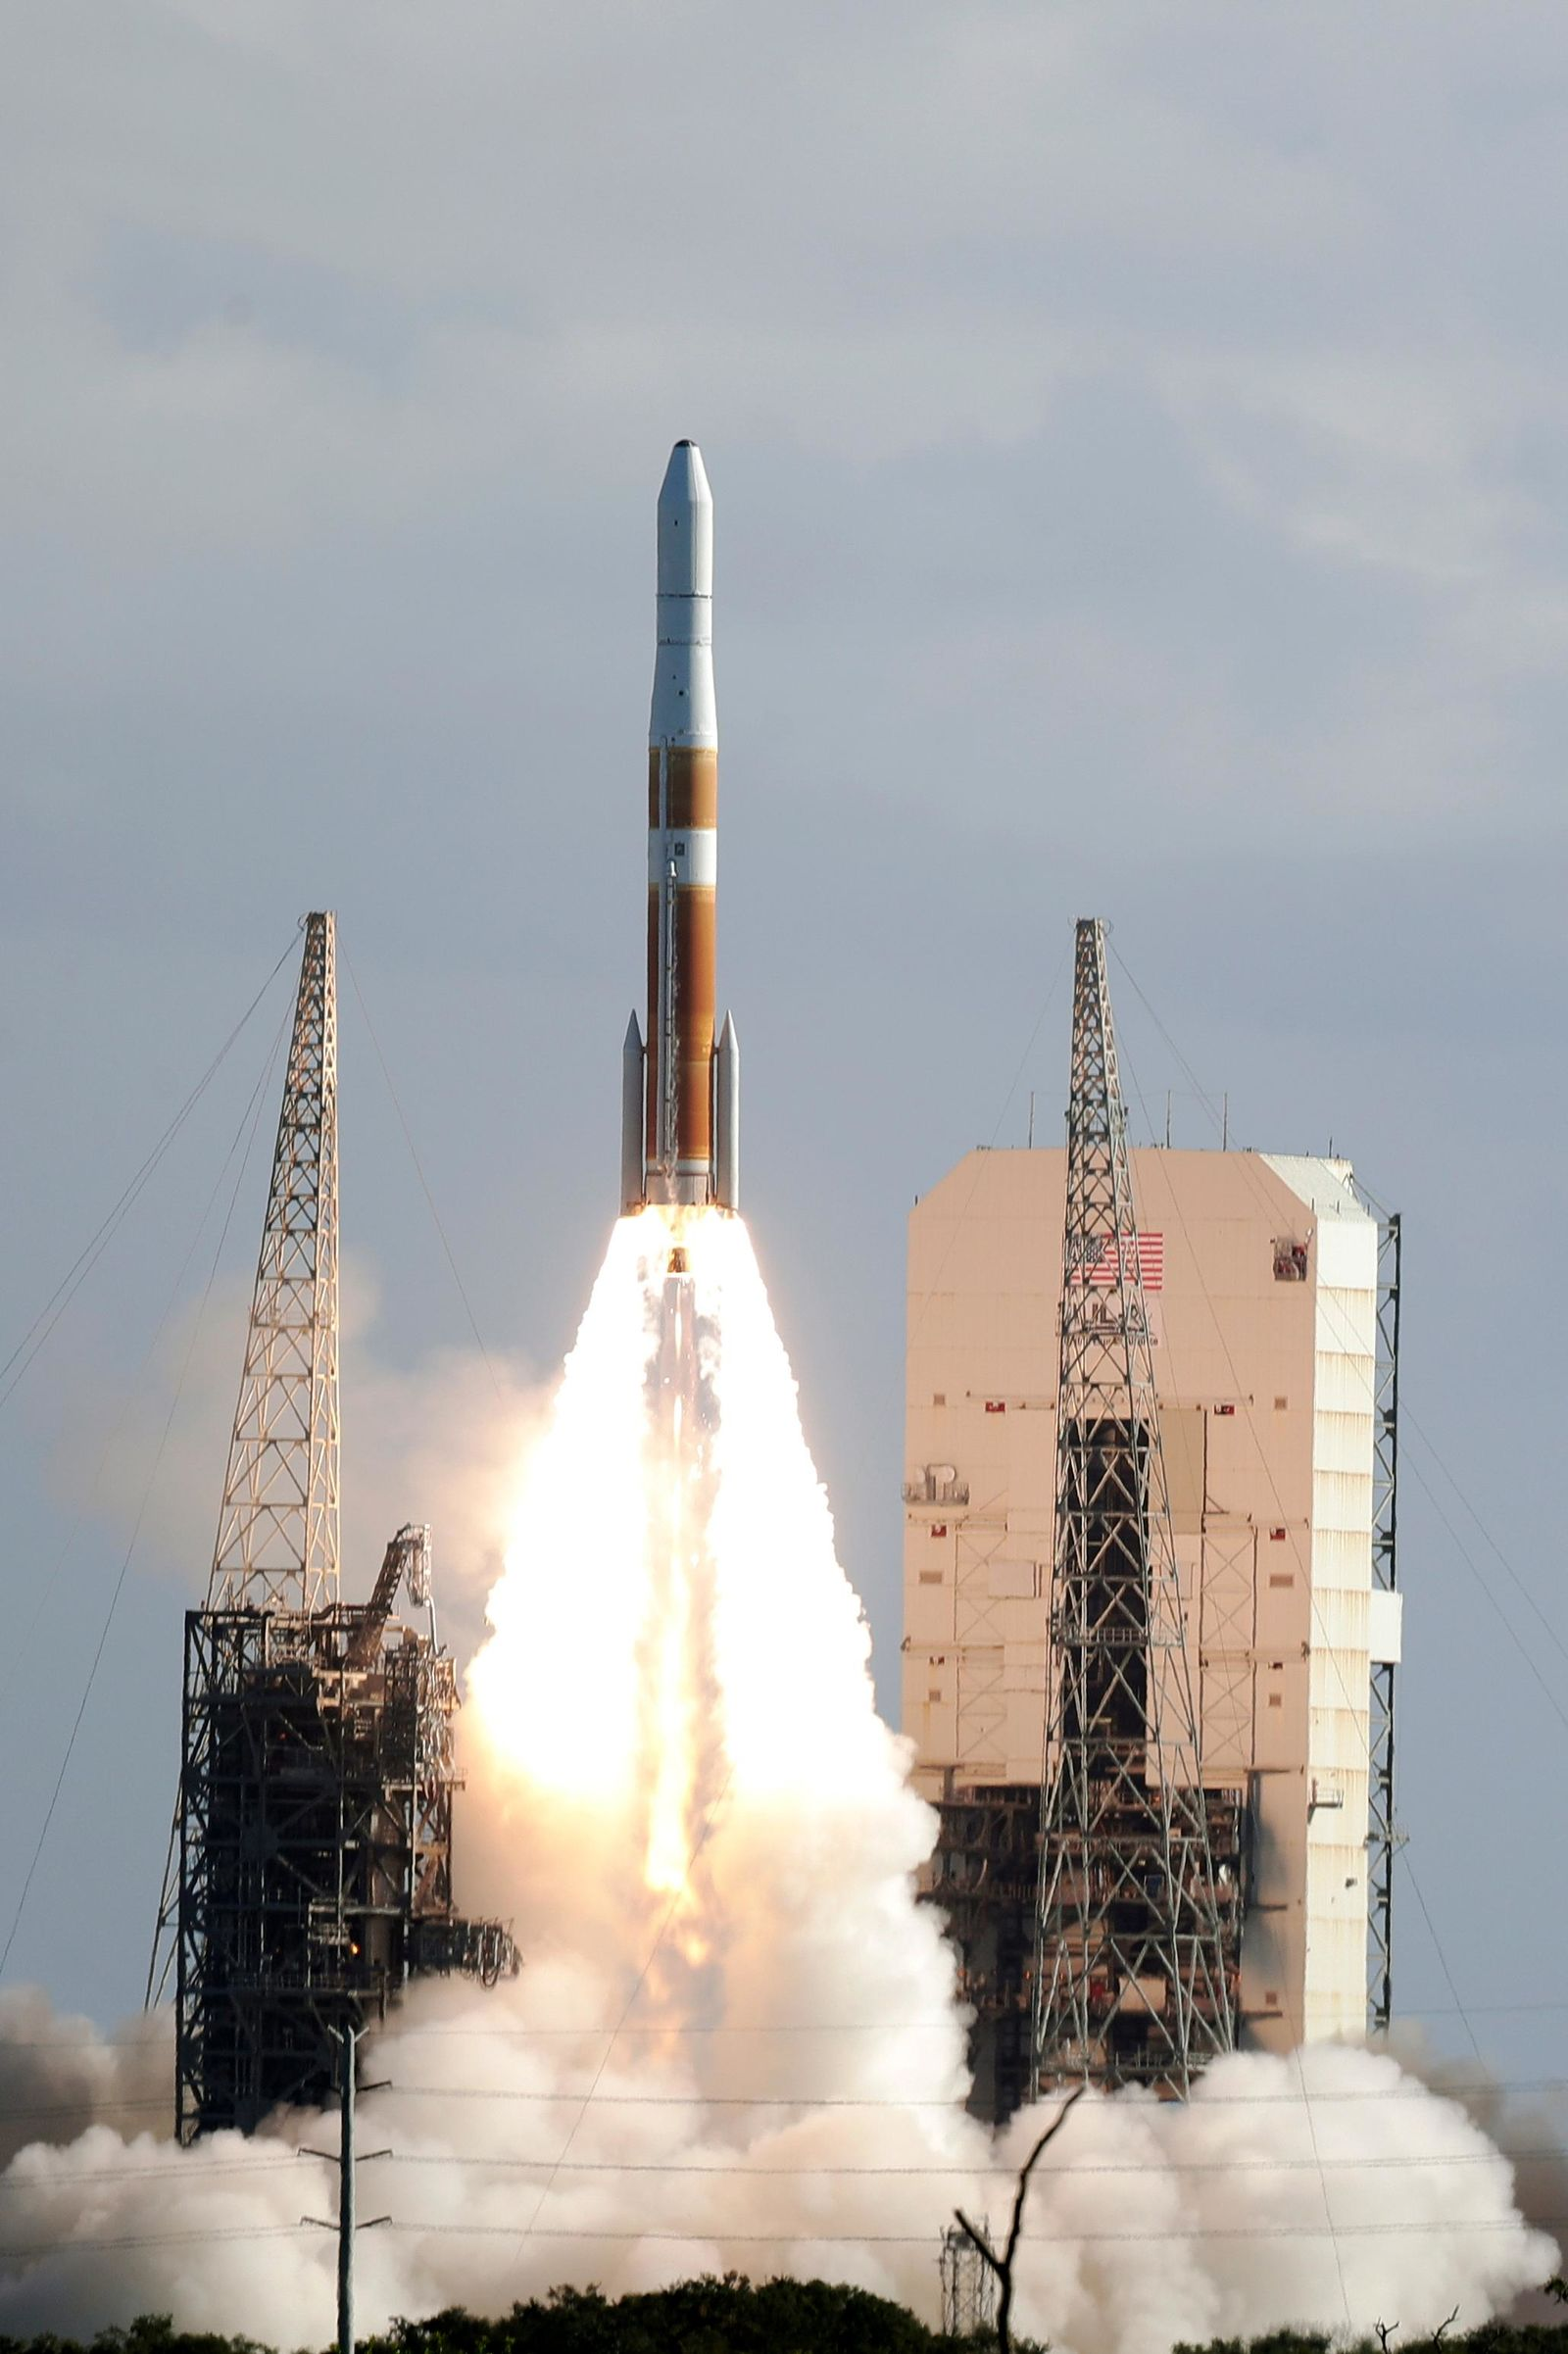 A United Launch Alliance Delta IV rocket lifts off from space launch complex 37 at the Cape Canaveral Air Force Station with the second Global Positioning System III payload, Thursday, Aug. 22, 2019, in Cape Canaveral, Fla. (AP Photo/John Raoux)